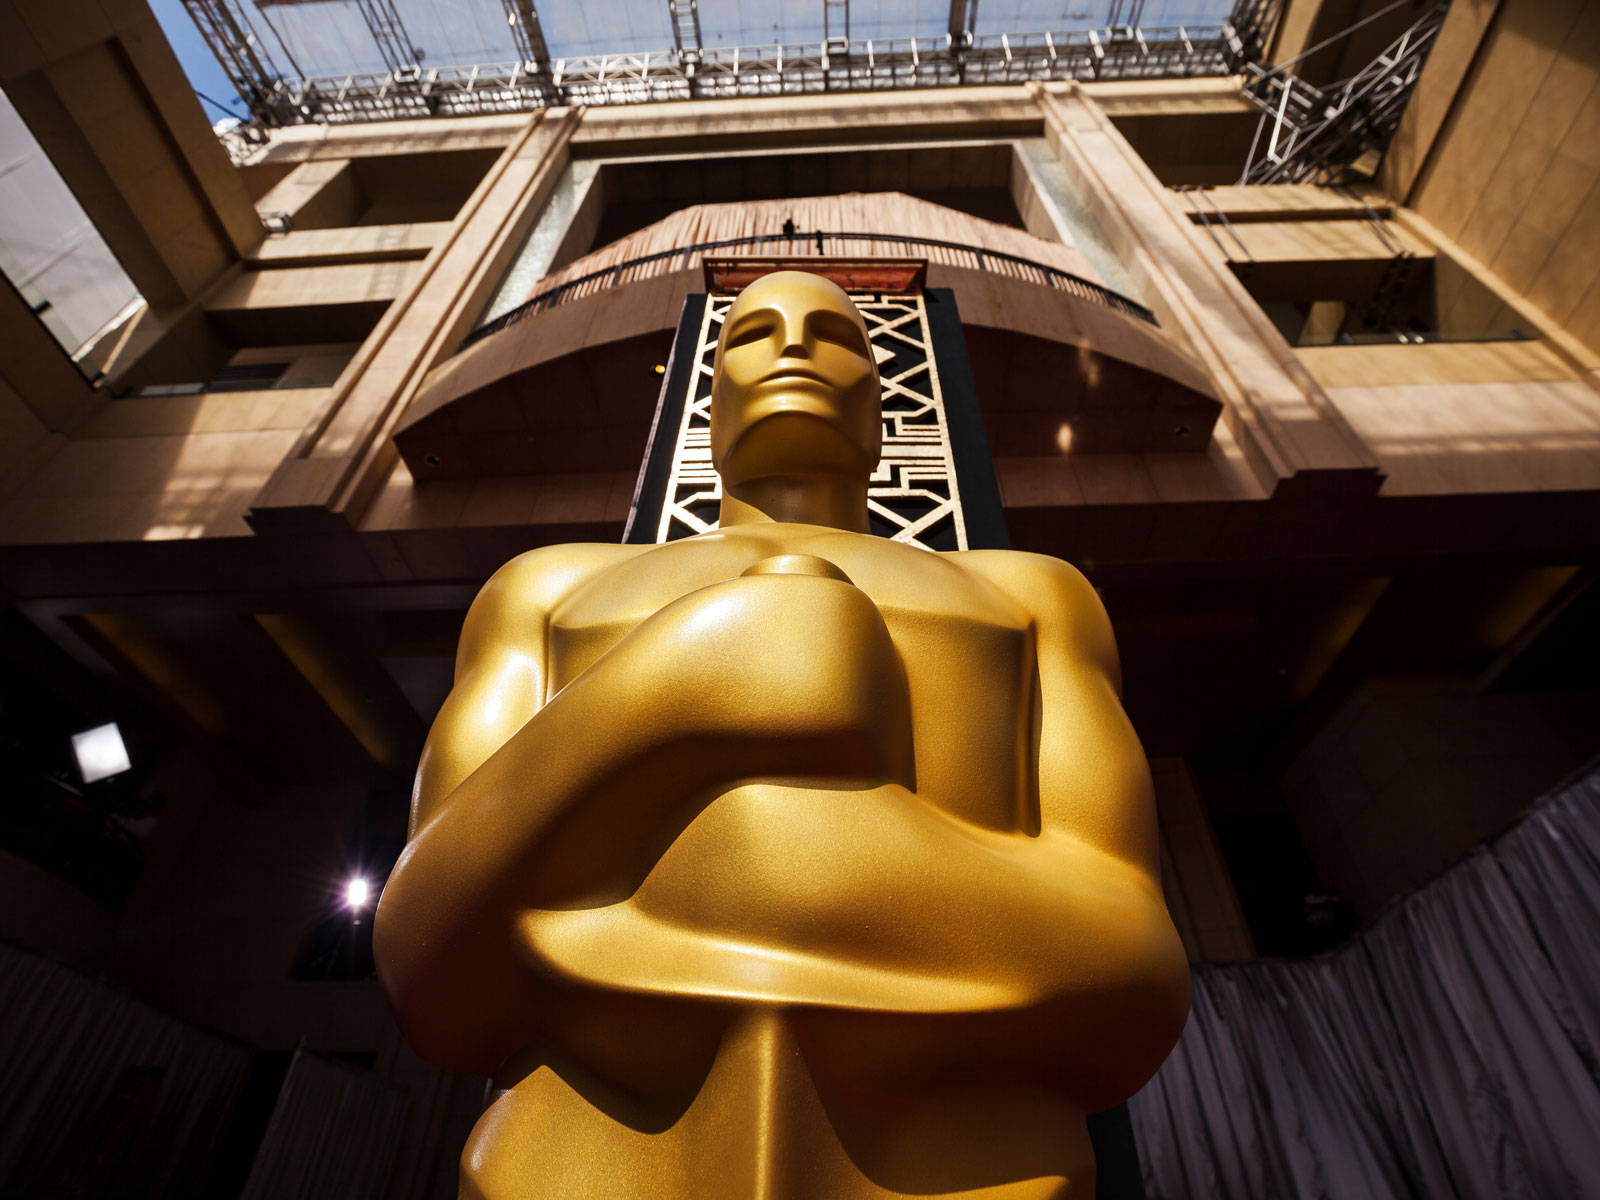 Academy Awards Statue